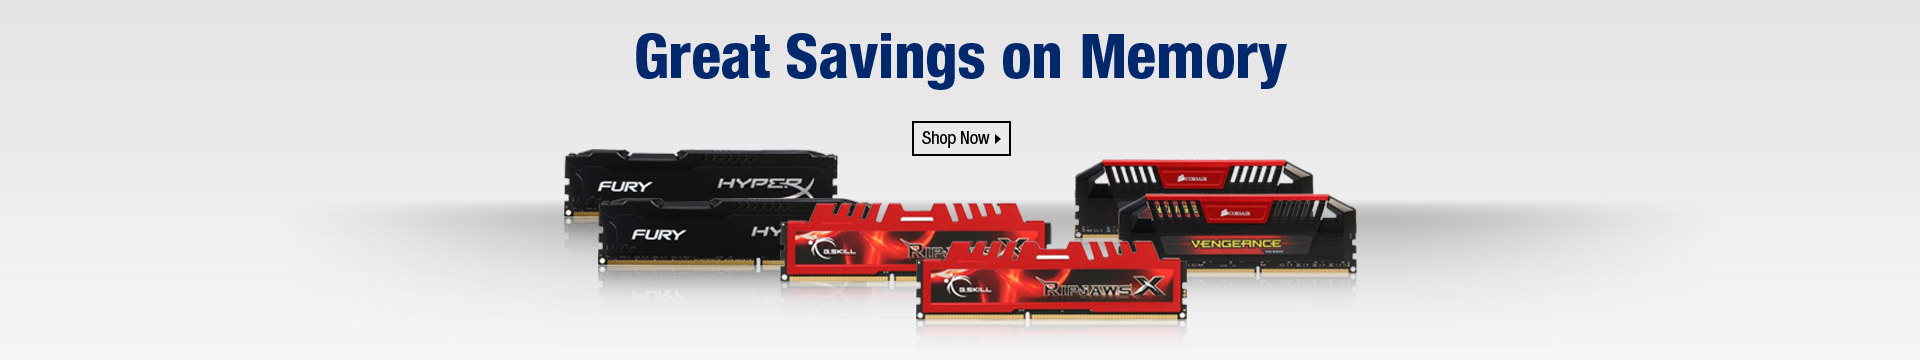 Great Savings on Memory